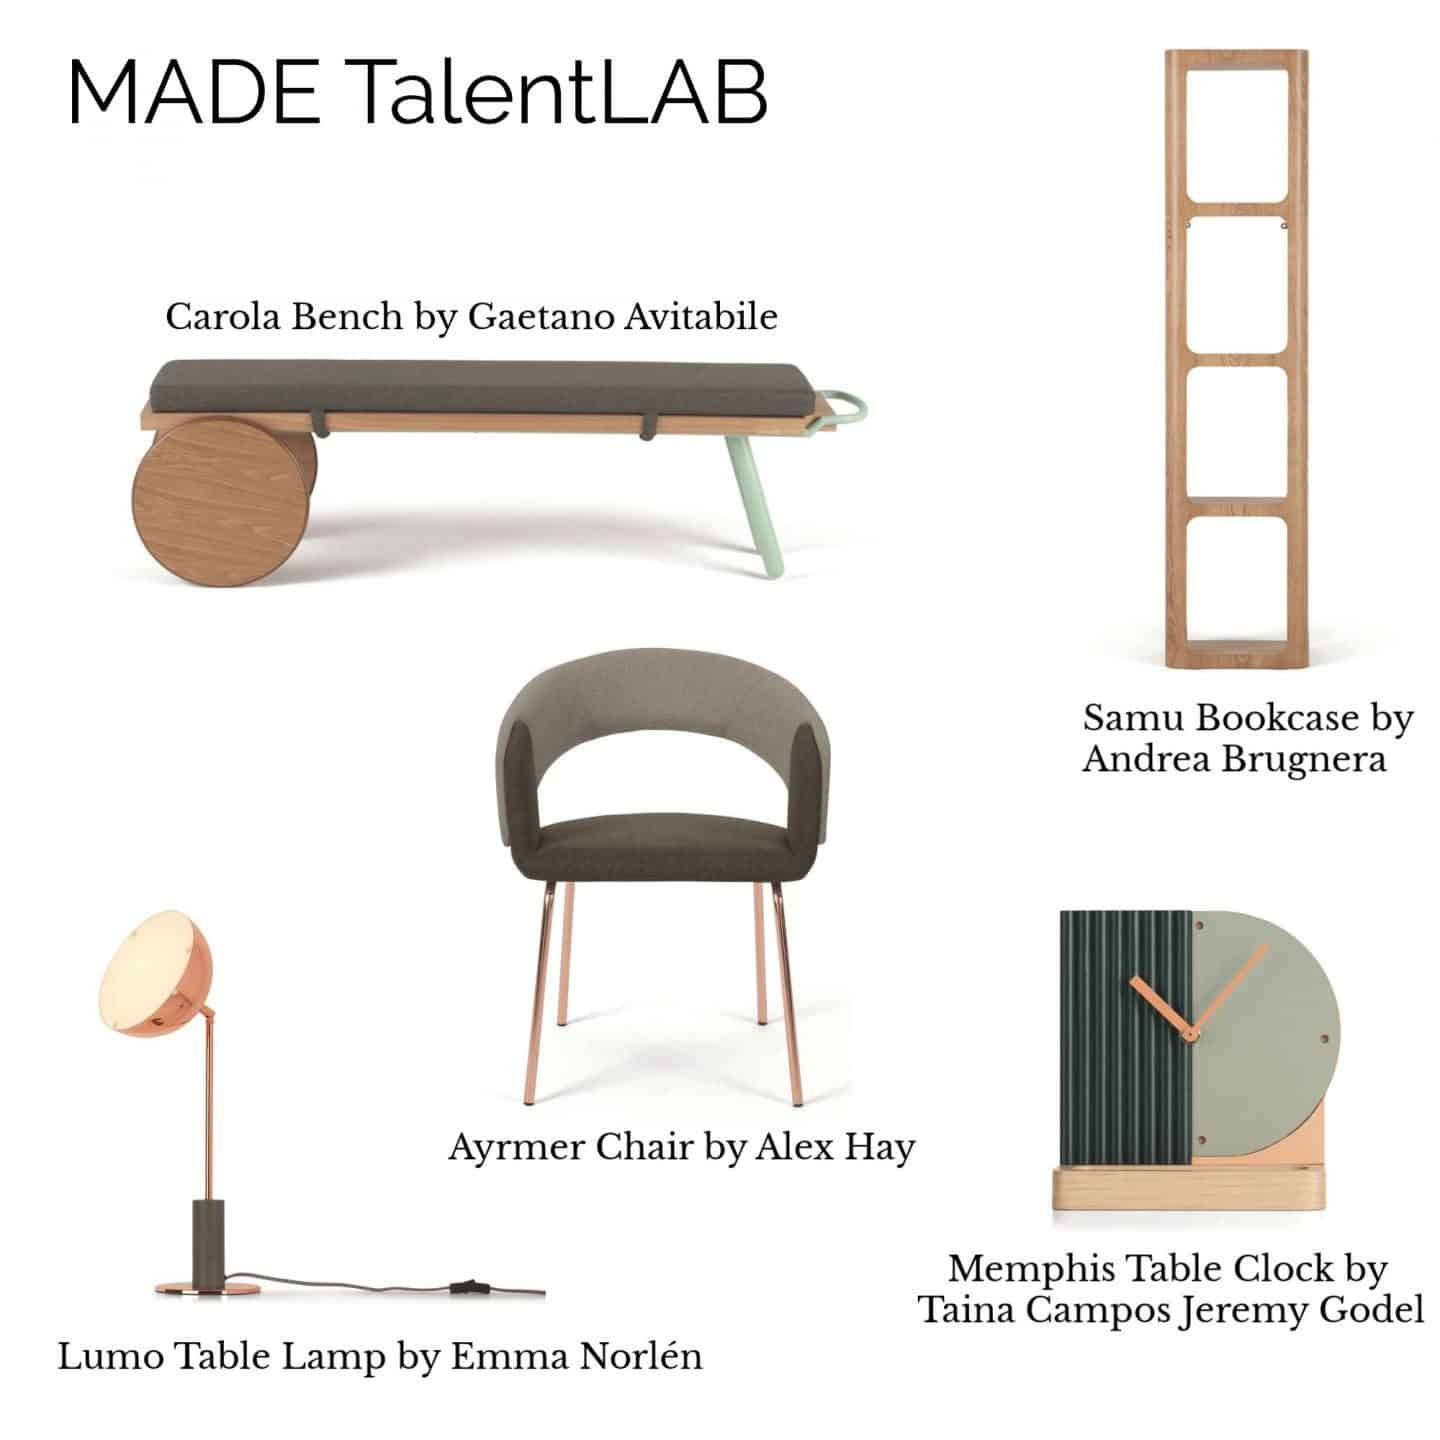 A collage of products from the MADE.COM TalentLAB Collection 2 featuring furniture, lighting and accessories